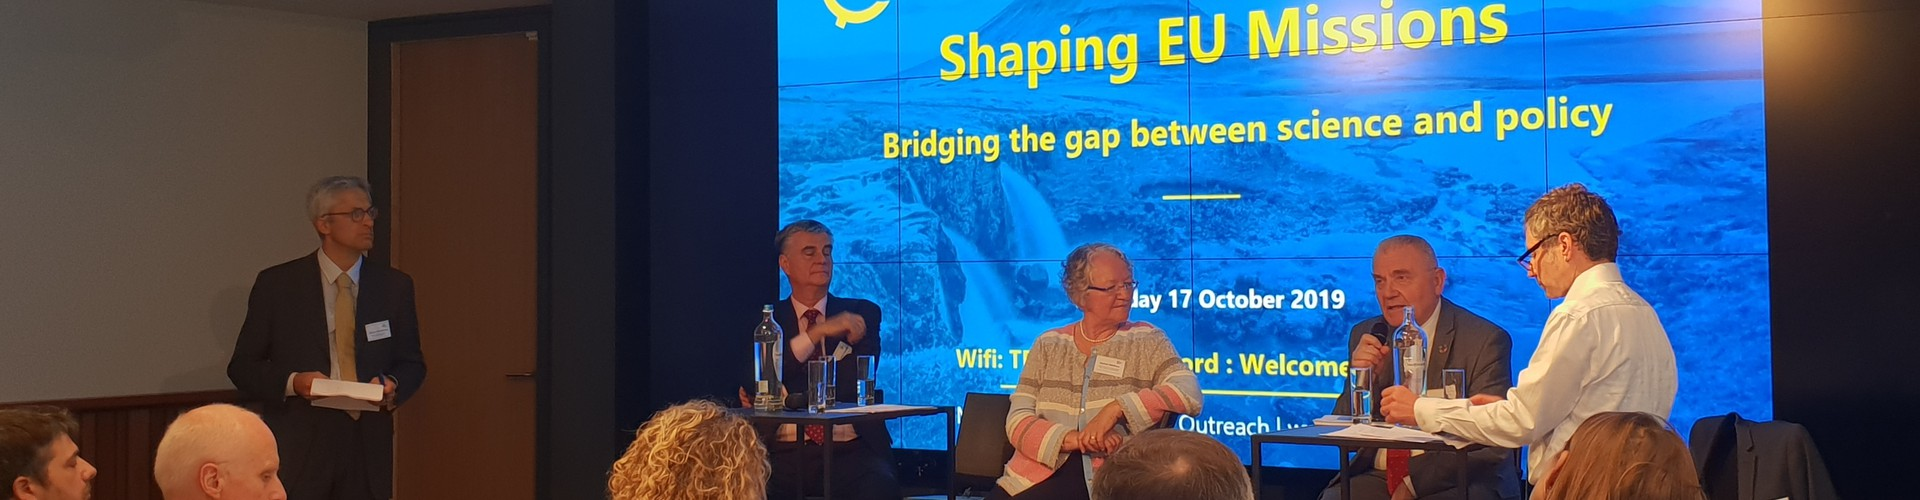 Panelists speaking at the EGU's shaping EU Missions event in Brussels, Belgium.